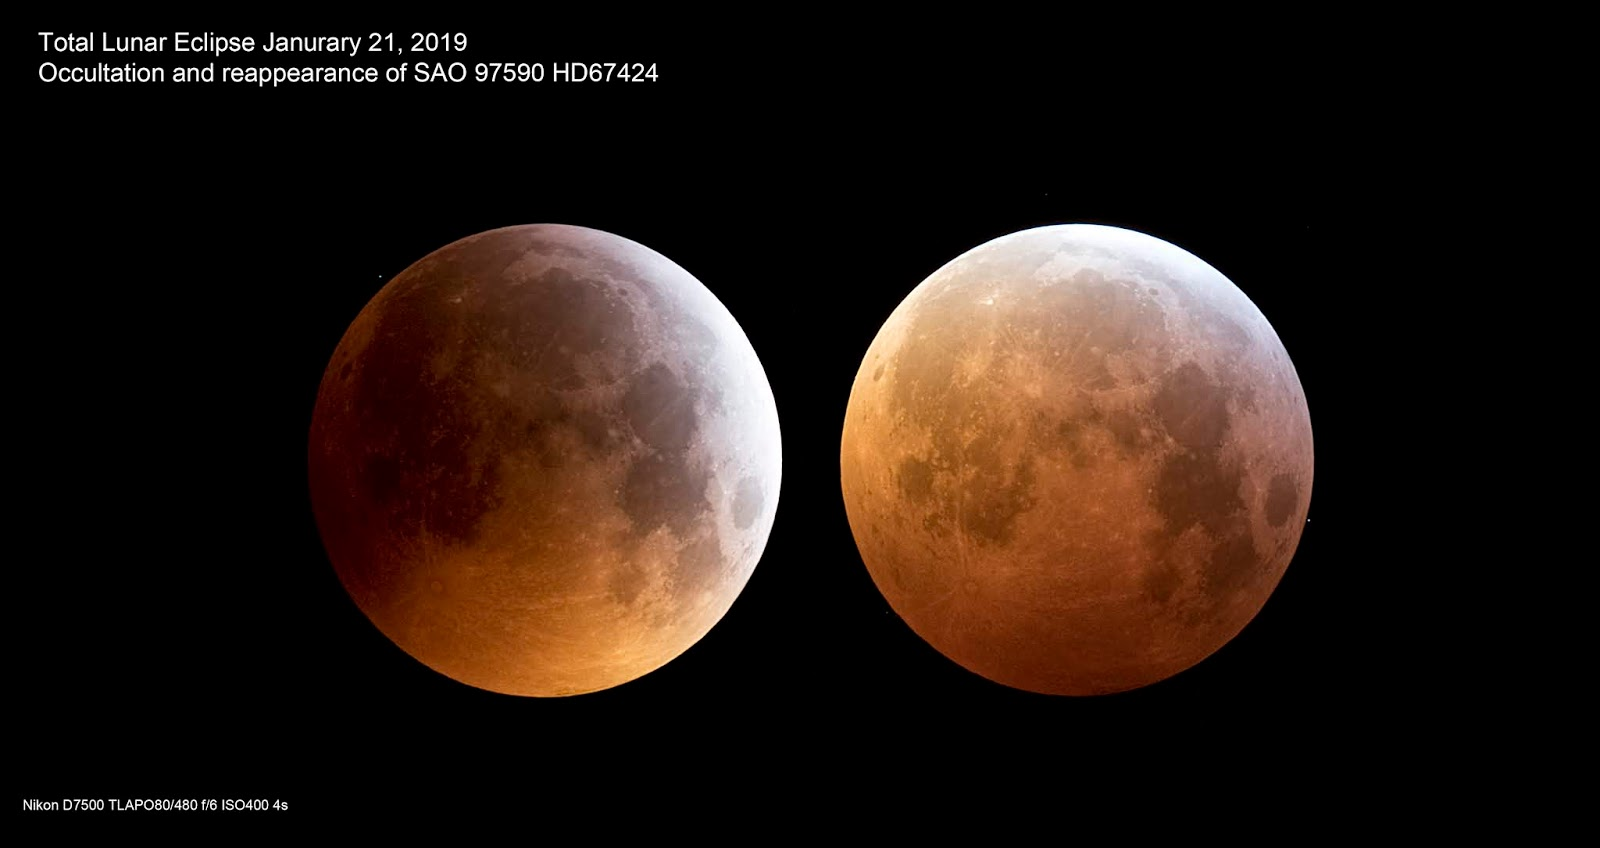 Pascal Hilkens Astro Page : Total Lunar Eclipse